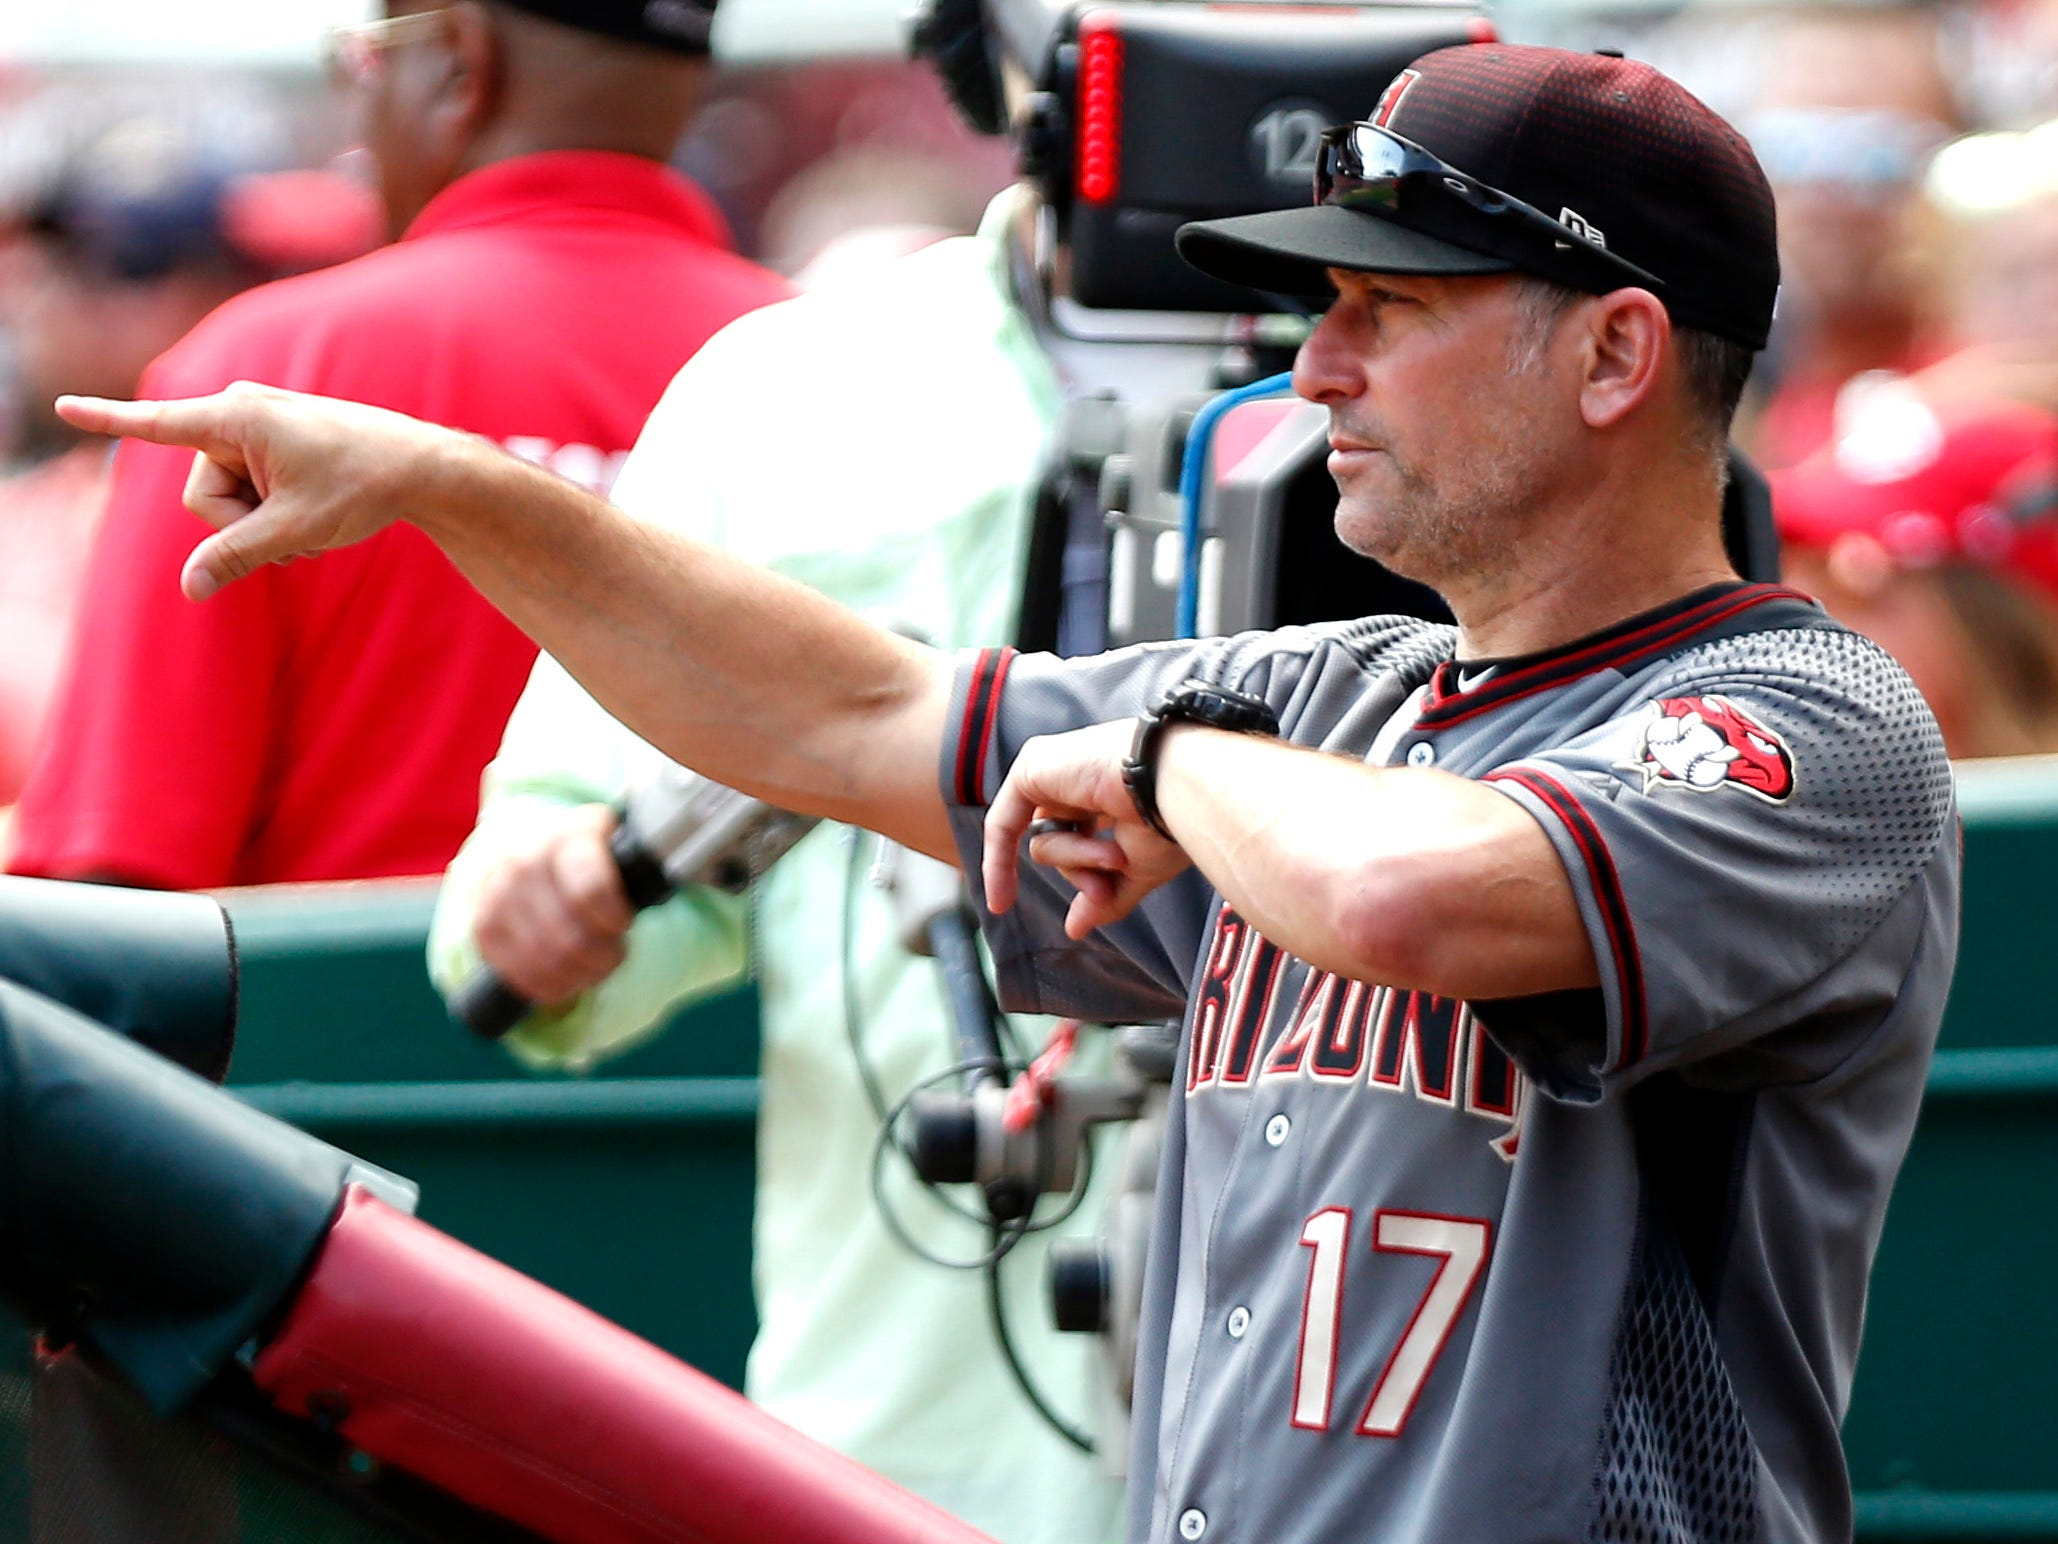 Aug 12, 2018; Cincinnati, OH, USA; Arizona Diamondbacks manager Torey Lovullo (17) signals from the dugout during a game against the Cincinnati Reds at Great American Ball Park. Mandatory Credit: David Kohl-USA TODAY Sports